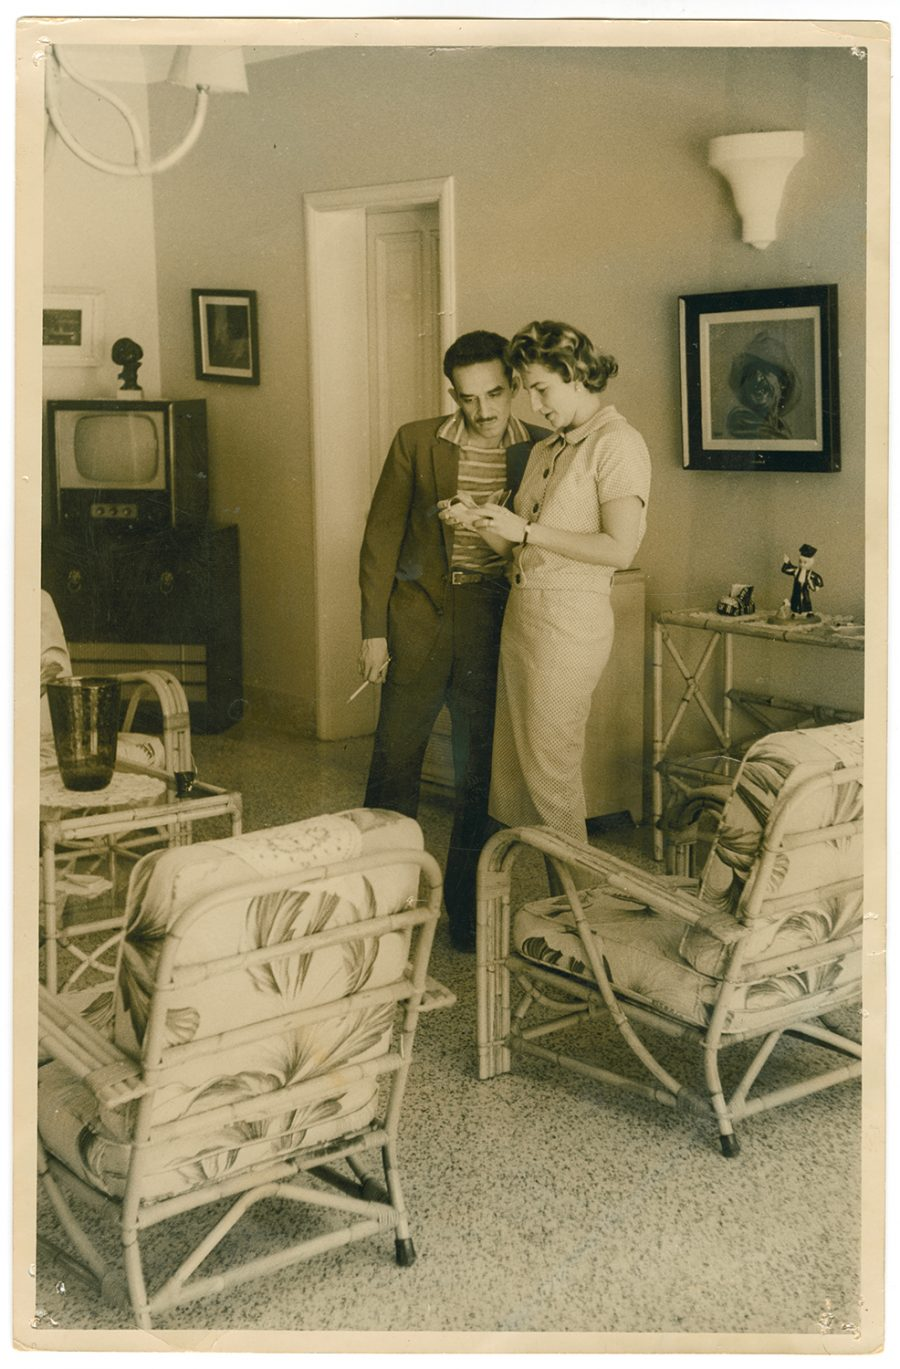 new gabriel garcia marquez digital archive features more than  gabriel garcia marquez emma castro 1957 courtesy harry ransom center